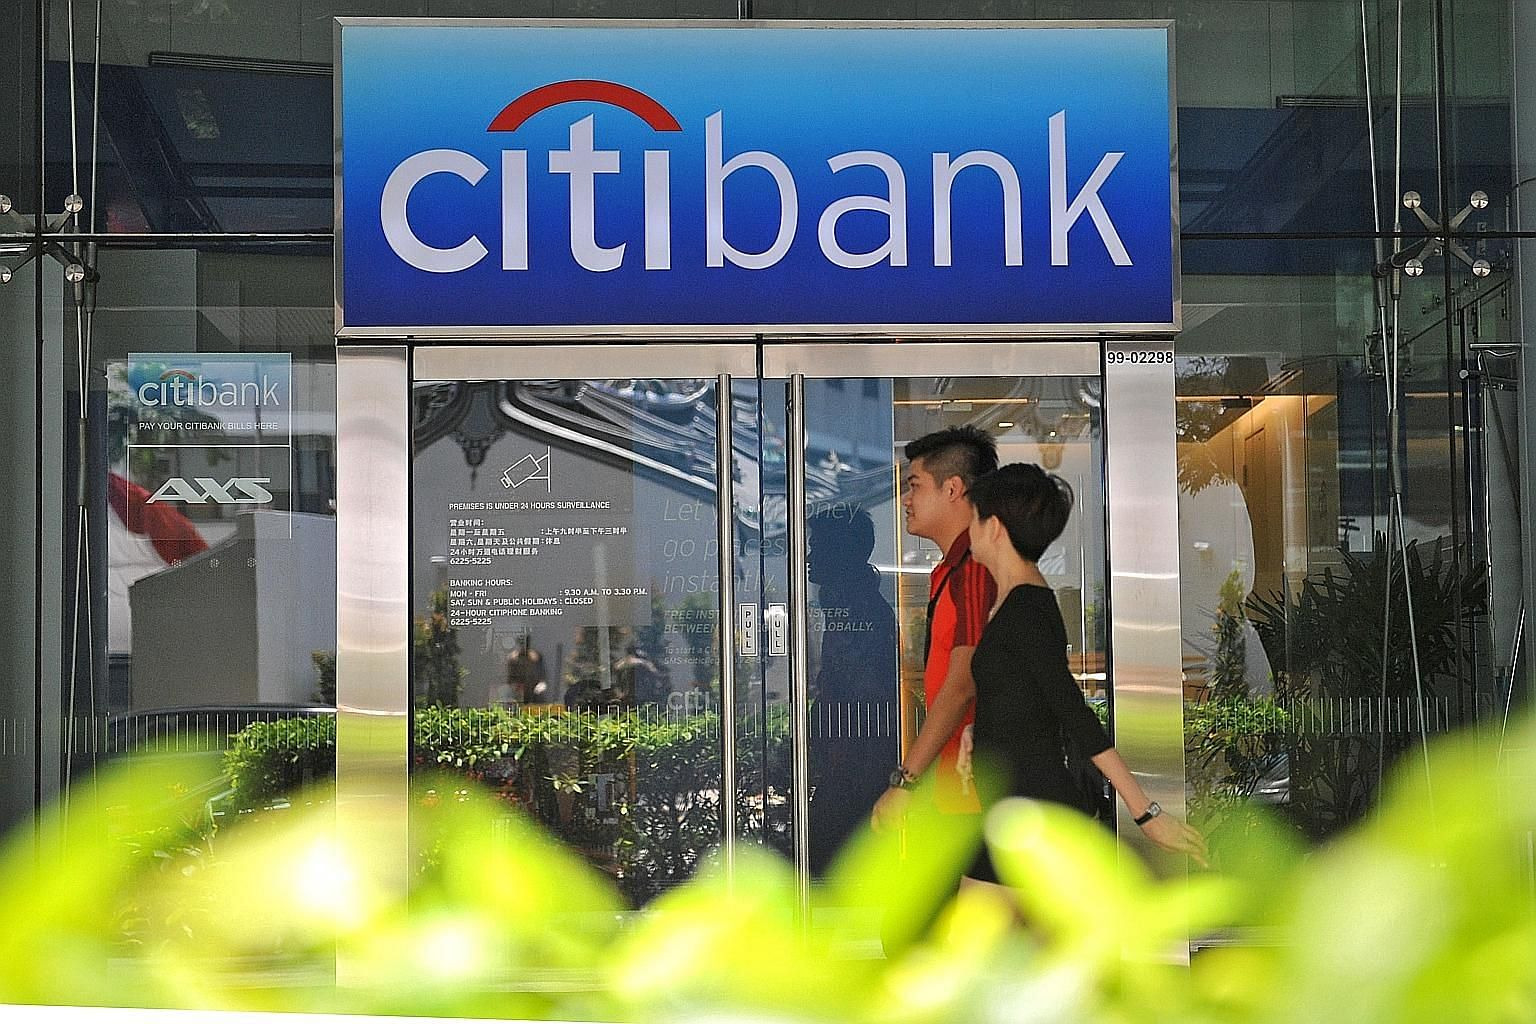 Citi's move comes as a report released last week showed that women in Singapore earned 6 per cent less than their men in 2018 after adjusting for factors like occupation, age and education, according to research by the Ministry of Manpower and the Na